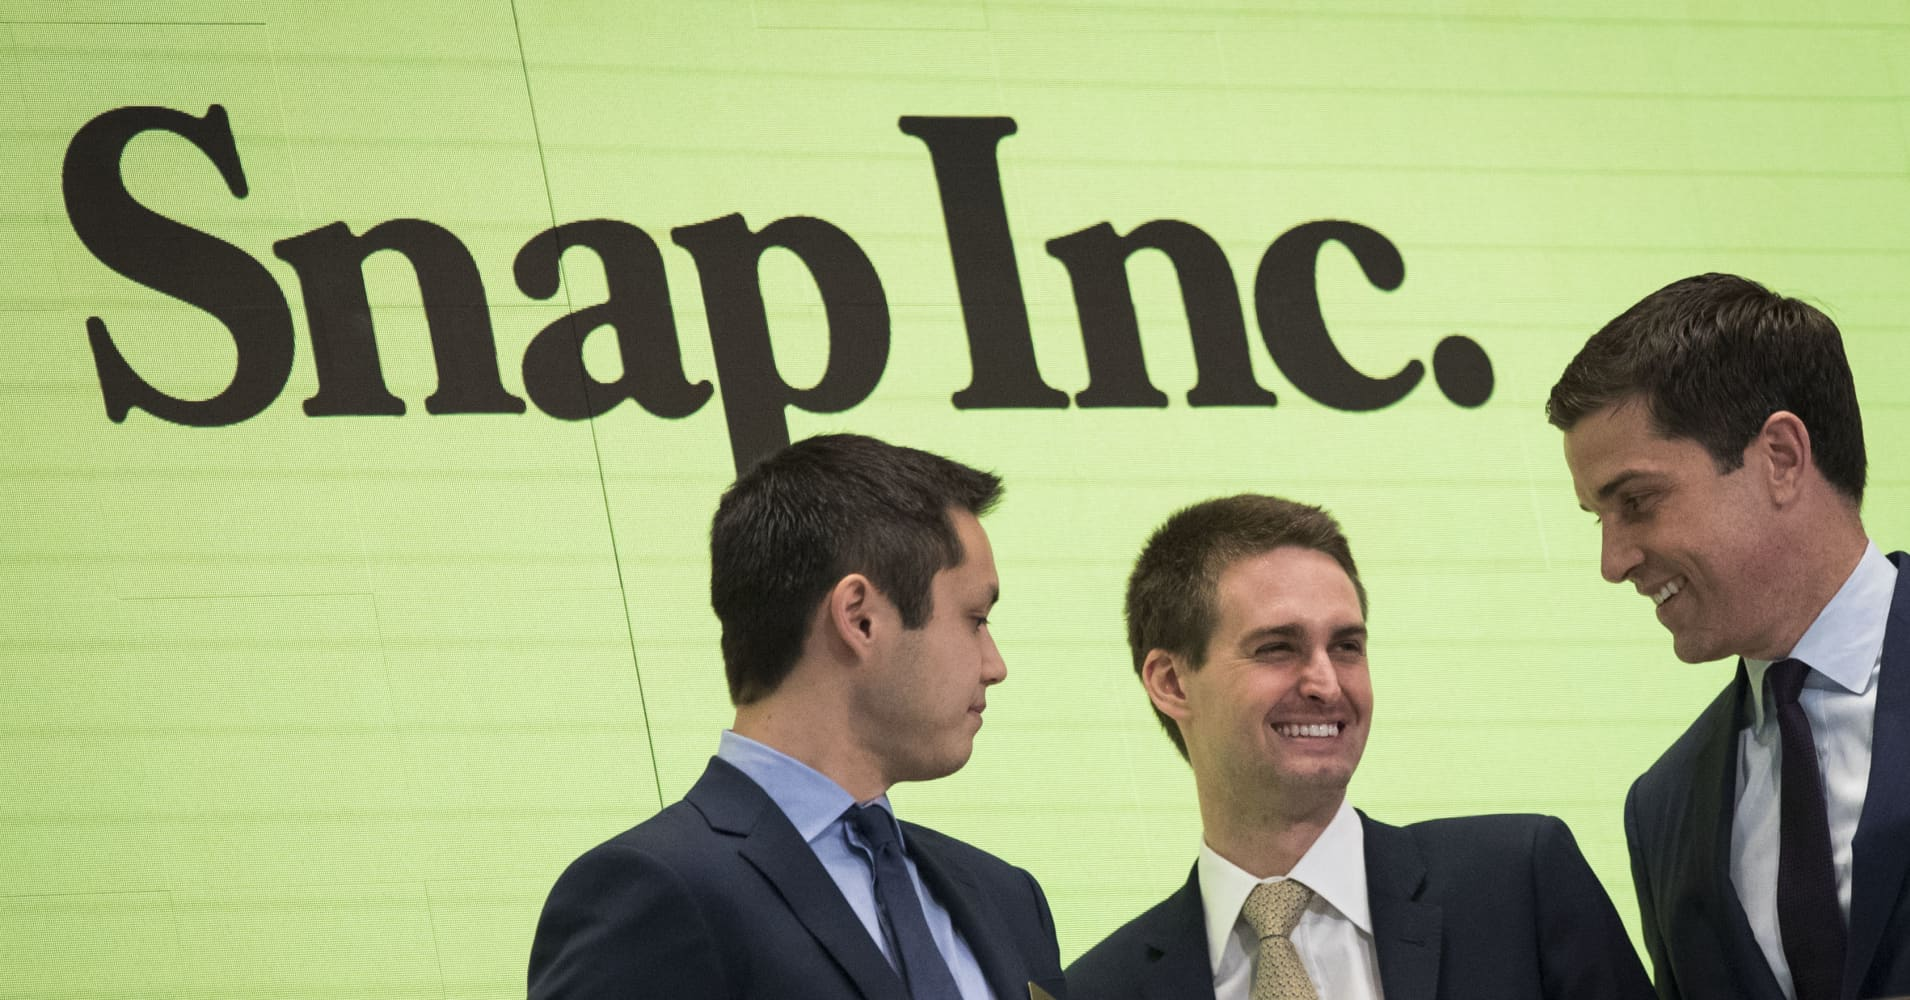 Snap stock rises after slew of new product announcements, but analysts remain wary